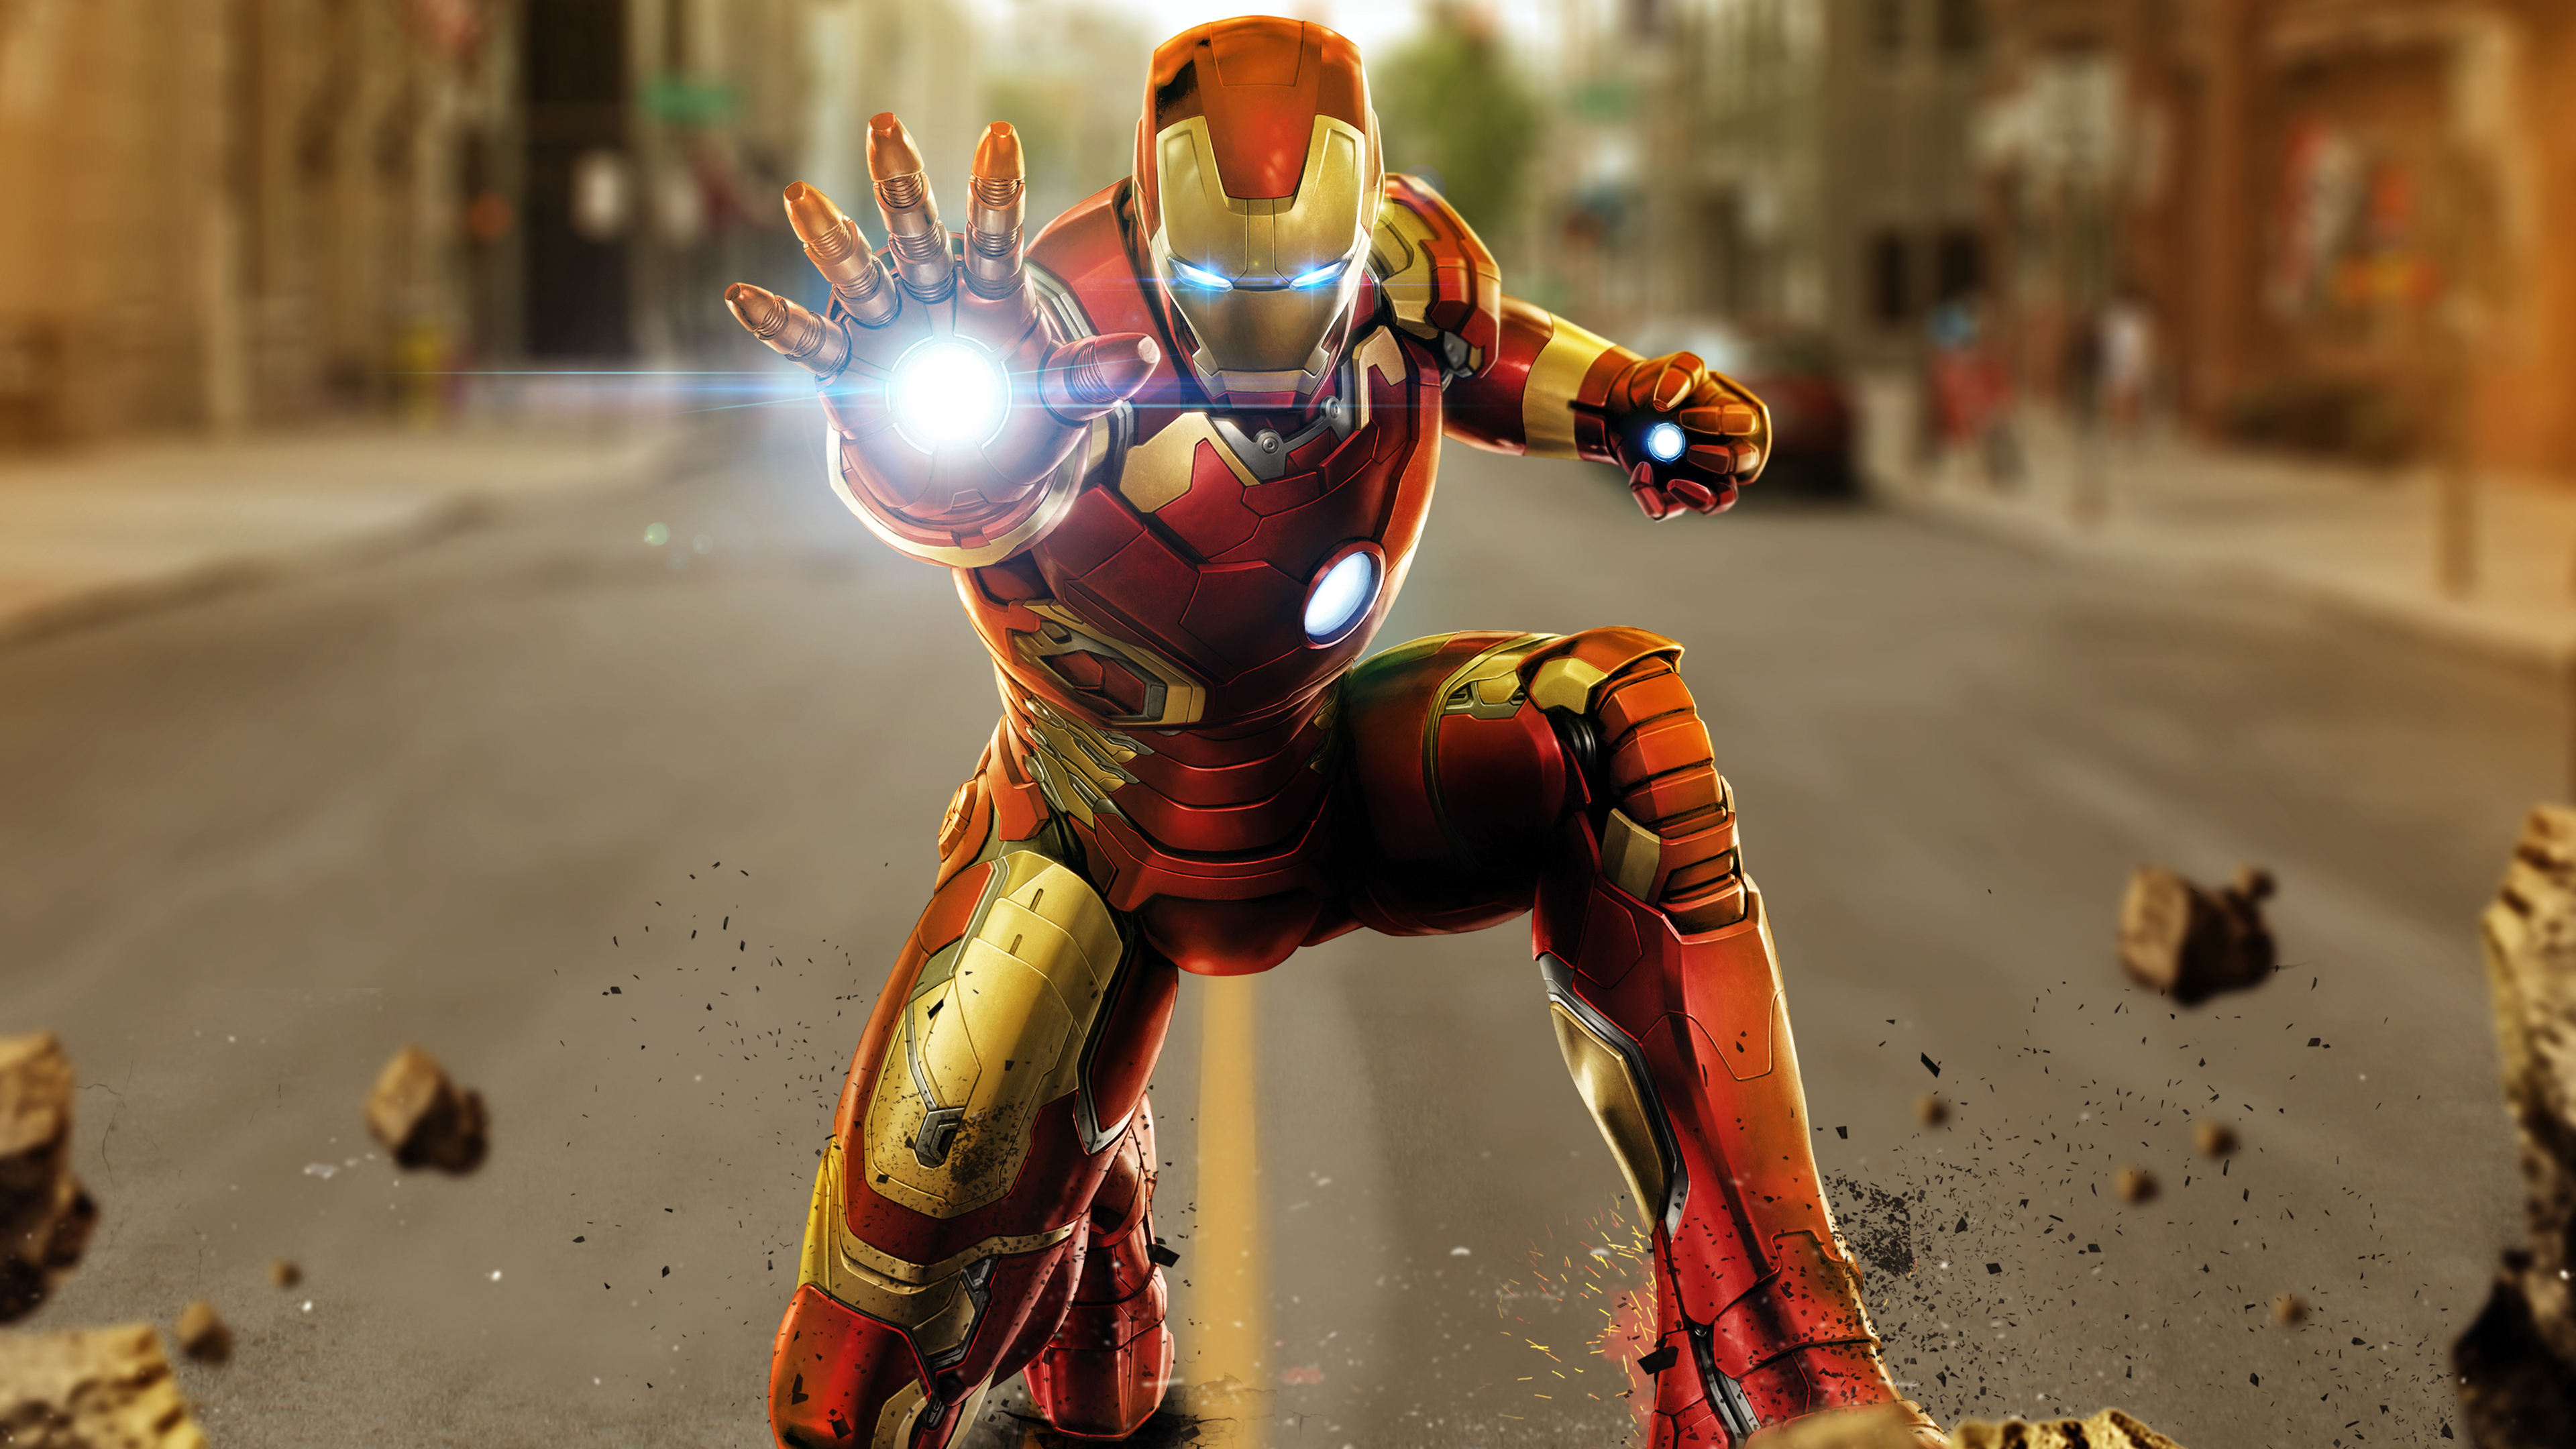 Iron Man Artwork 4k Wallpapers Wallpapers Hd